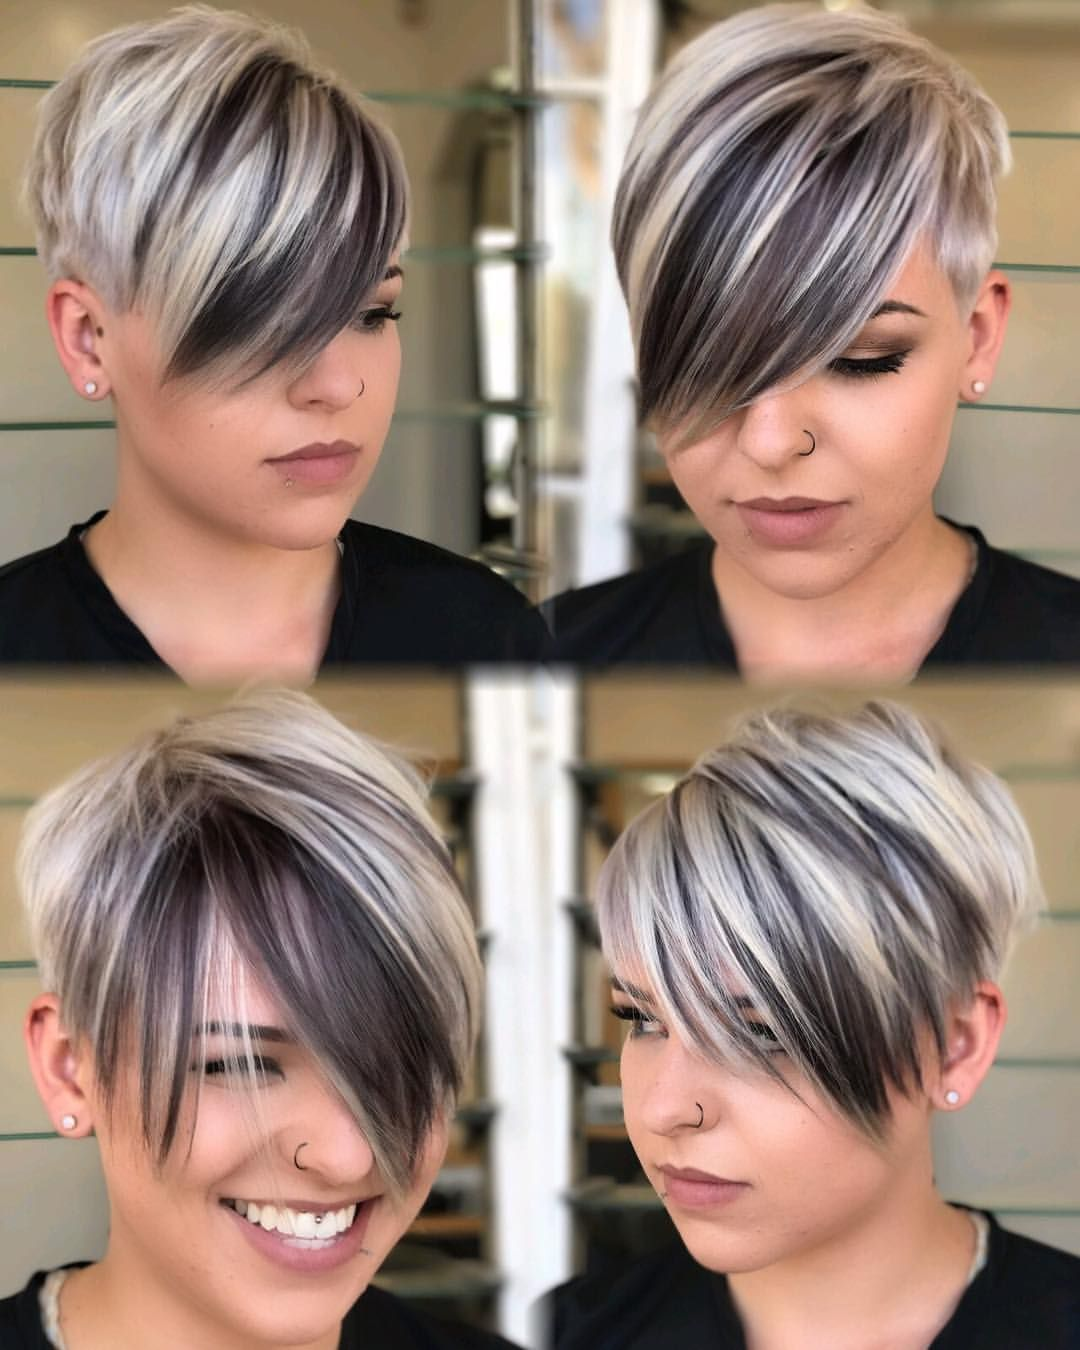 Best 55 Ombre Color For Pixie Haircut Ideas Nona Gaya Short Hair Styles For Round Faces Thick Hair Styles Hair Styles